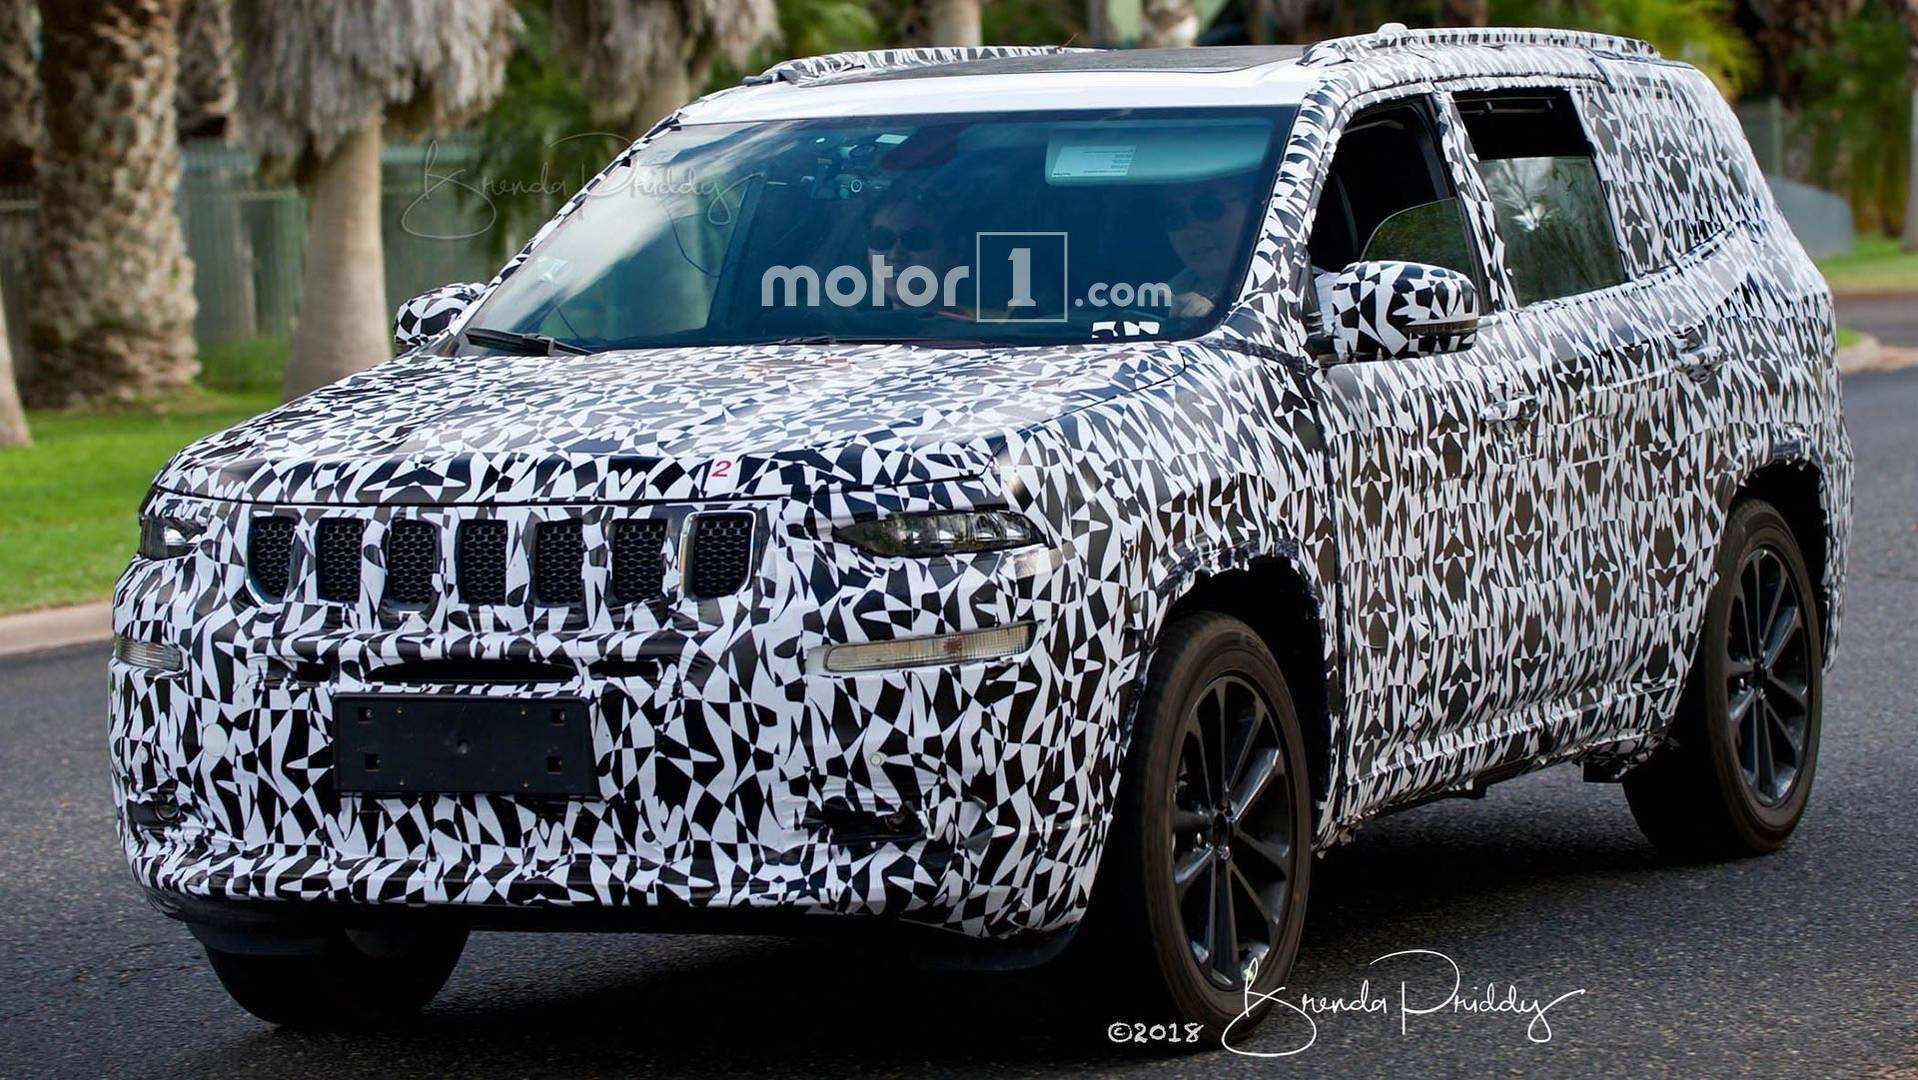 79 Concept of Jeep Grand Cherokee 2020 Spy Shots Speed Test by Jeep Grand Cherokee 2020 Spy Shots